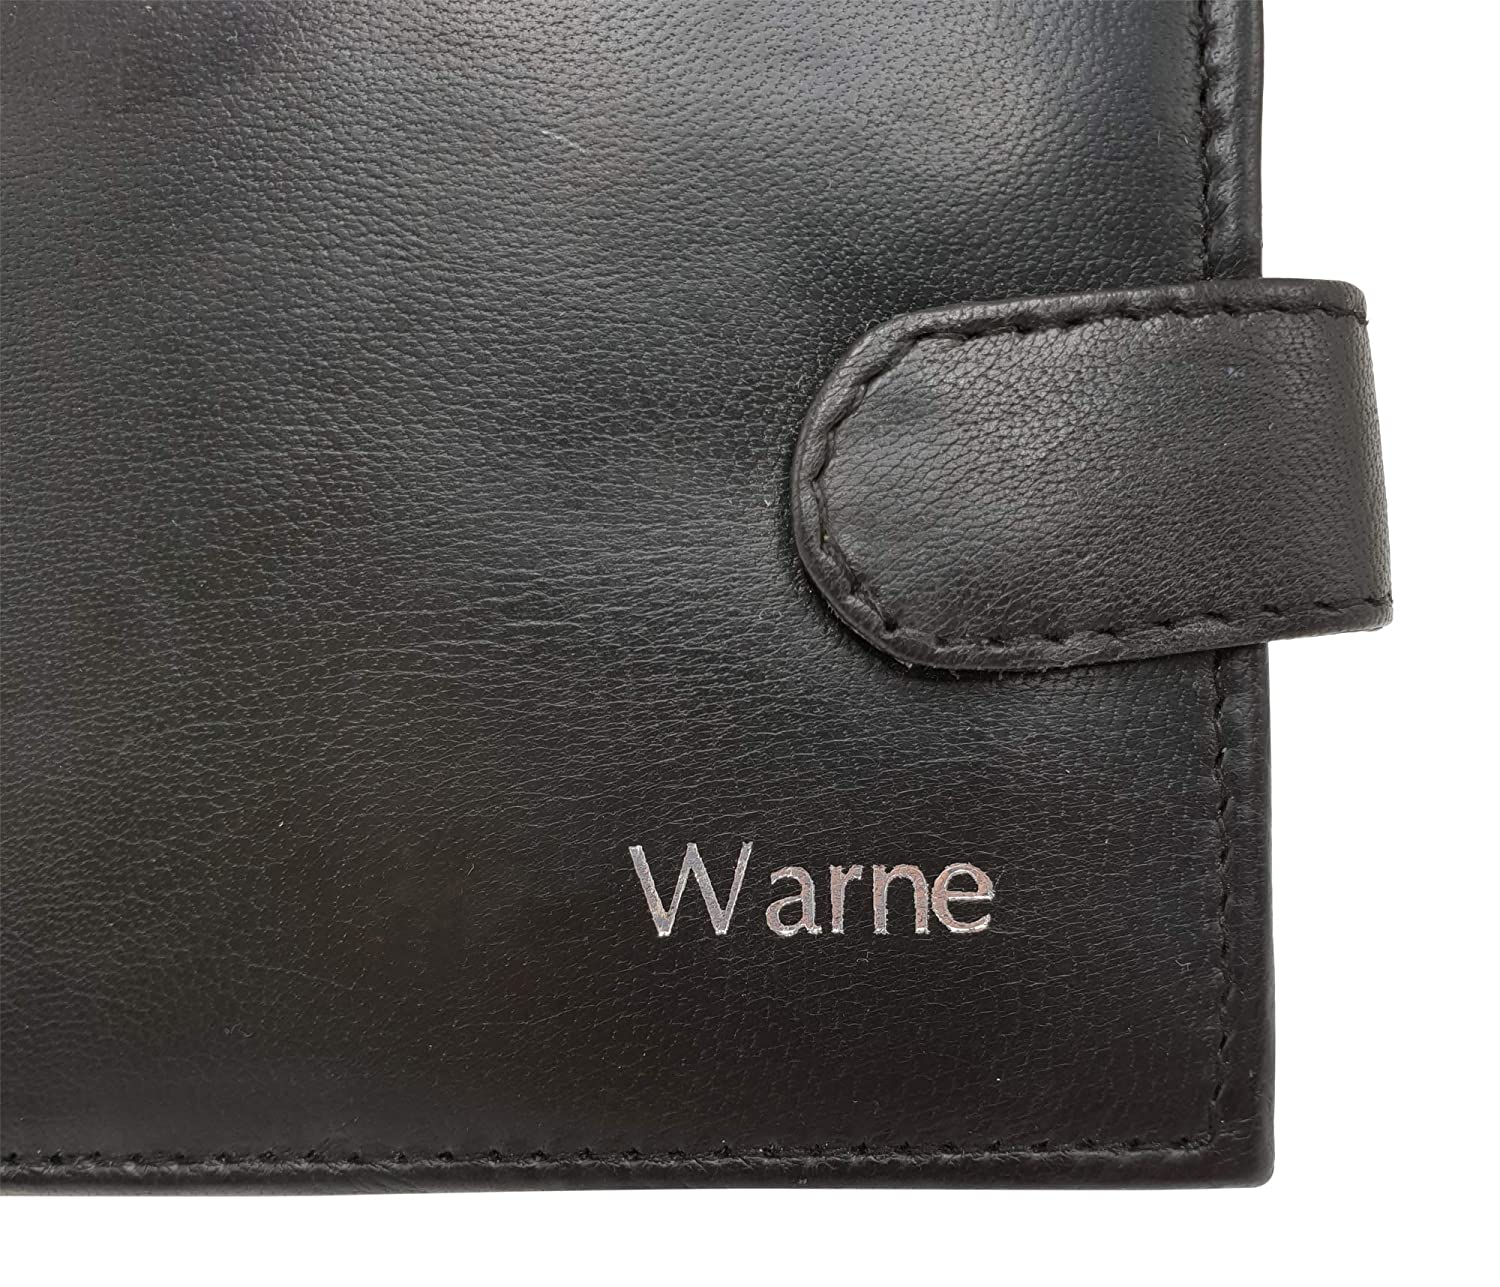 585078b8006d Personalised RFID Blocking Mens Designer Wallet - Black - Genuine Leather -  Keep Your Money Safe - Large Coin Zipped Coin Pocket with Gift Box  ...